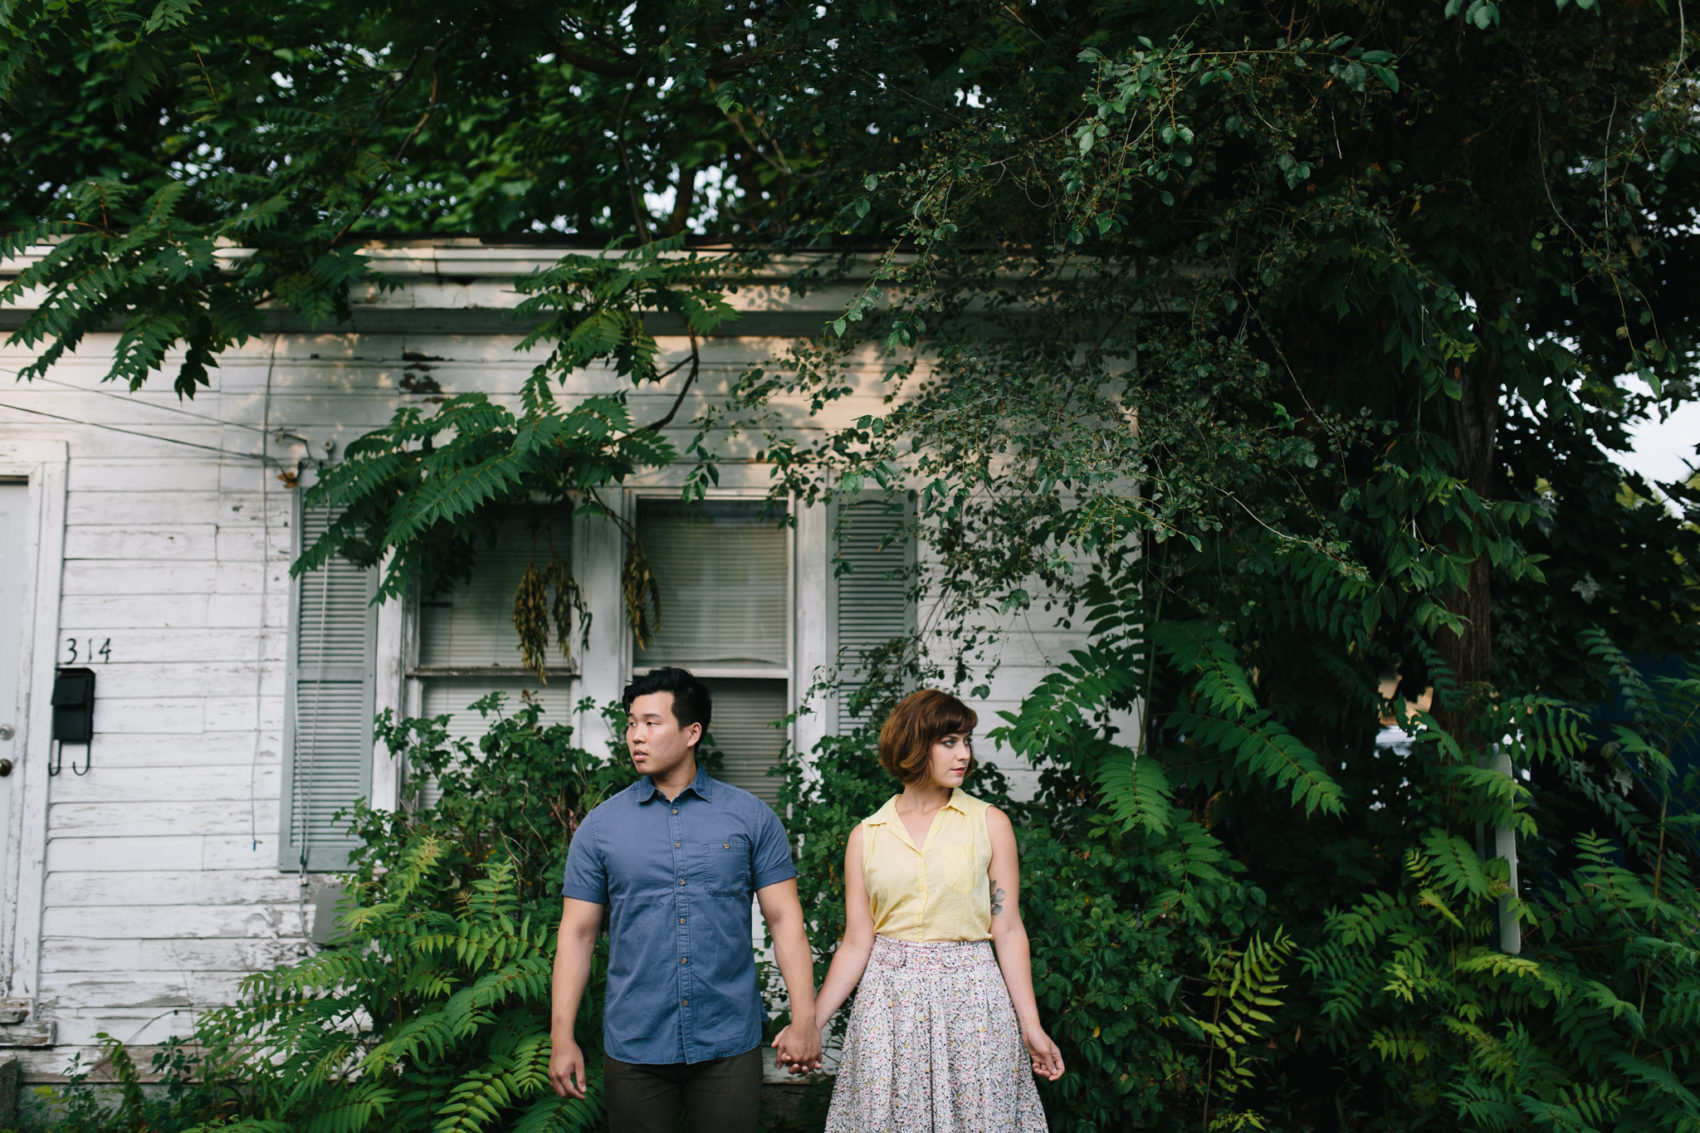 Couple stands in front of an old house in Ypsilanti, Michigan